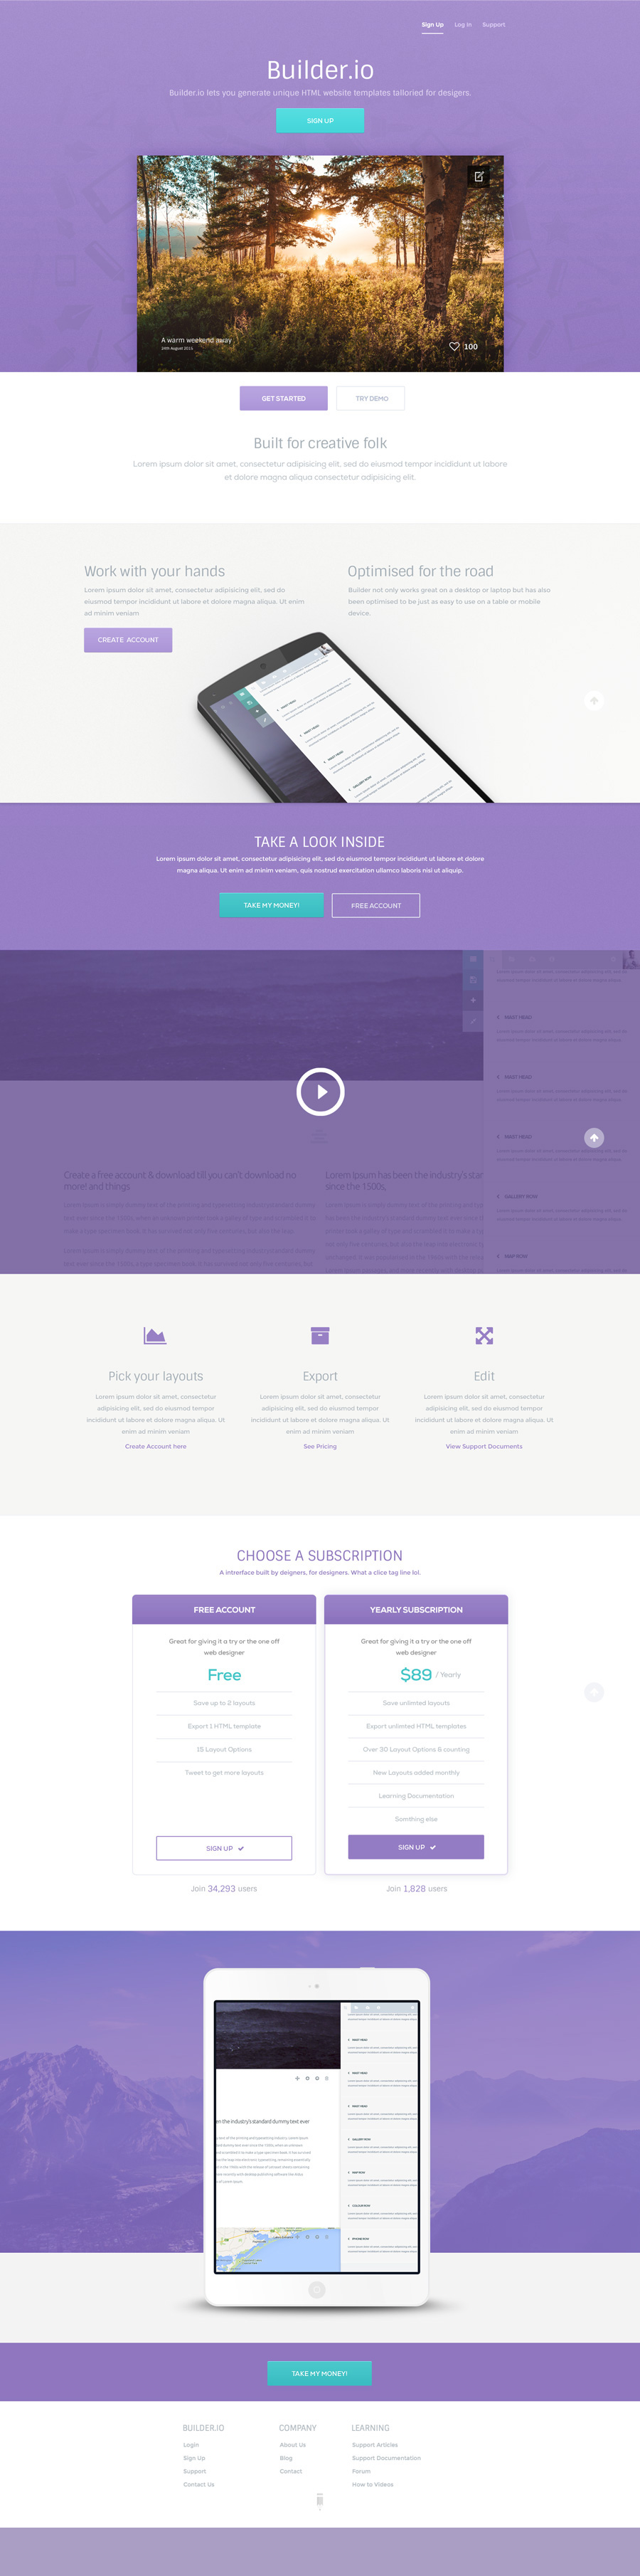 Builder A Free Vibrant Web App PSD Template - Website template builder